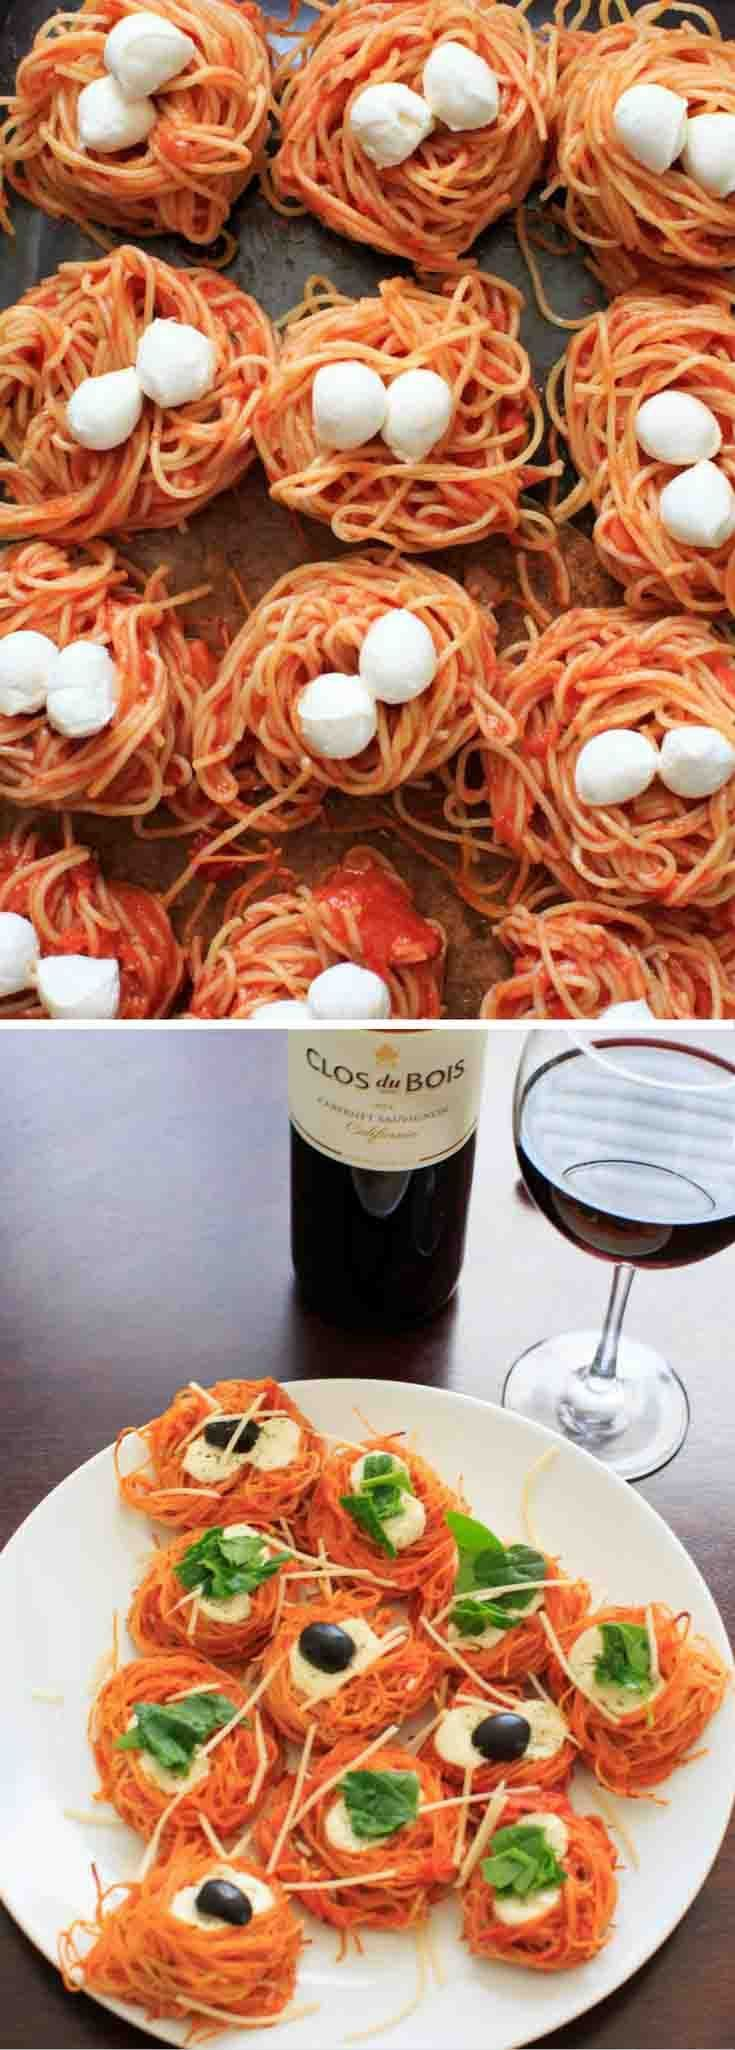 Msg 4 21+ [Ad] Simple Baked Spaghetti Nests - Barilla Angel Hair Pasta paired with Clos du Bois Cabernet Sauvignon red wine makes an easy and elegant dinner for entertaining. @barillaus @closdubois #thetalkofthetable